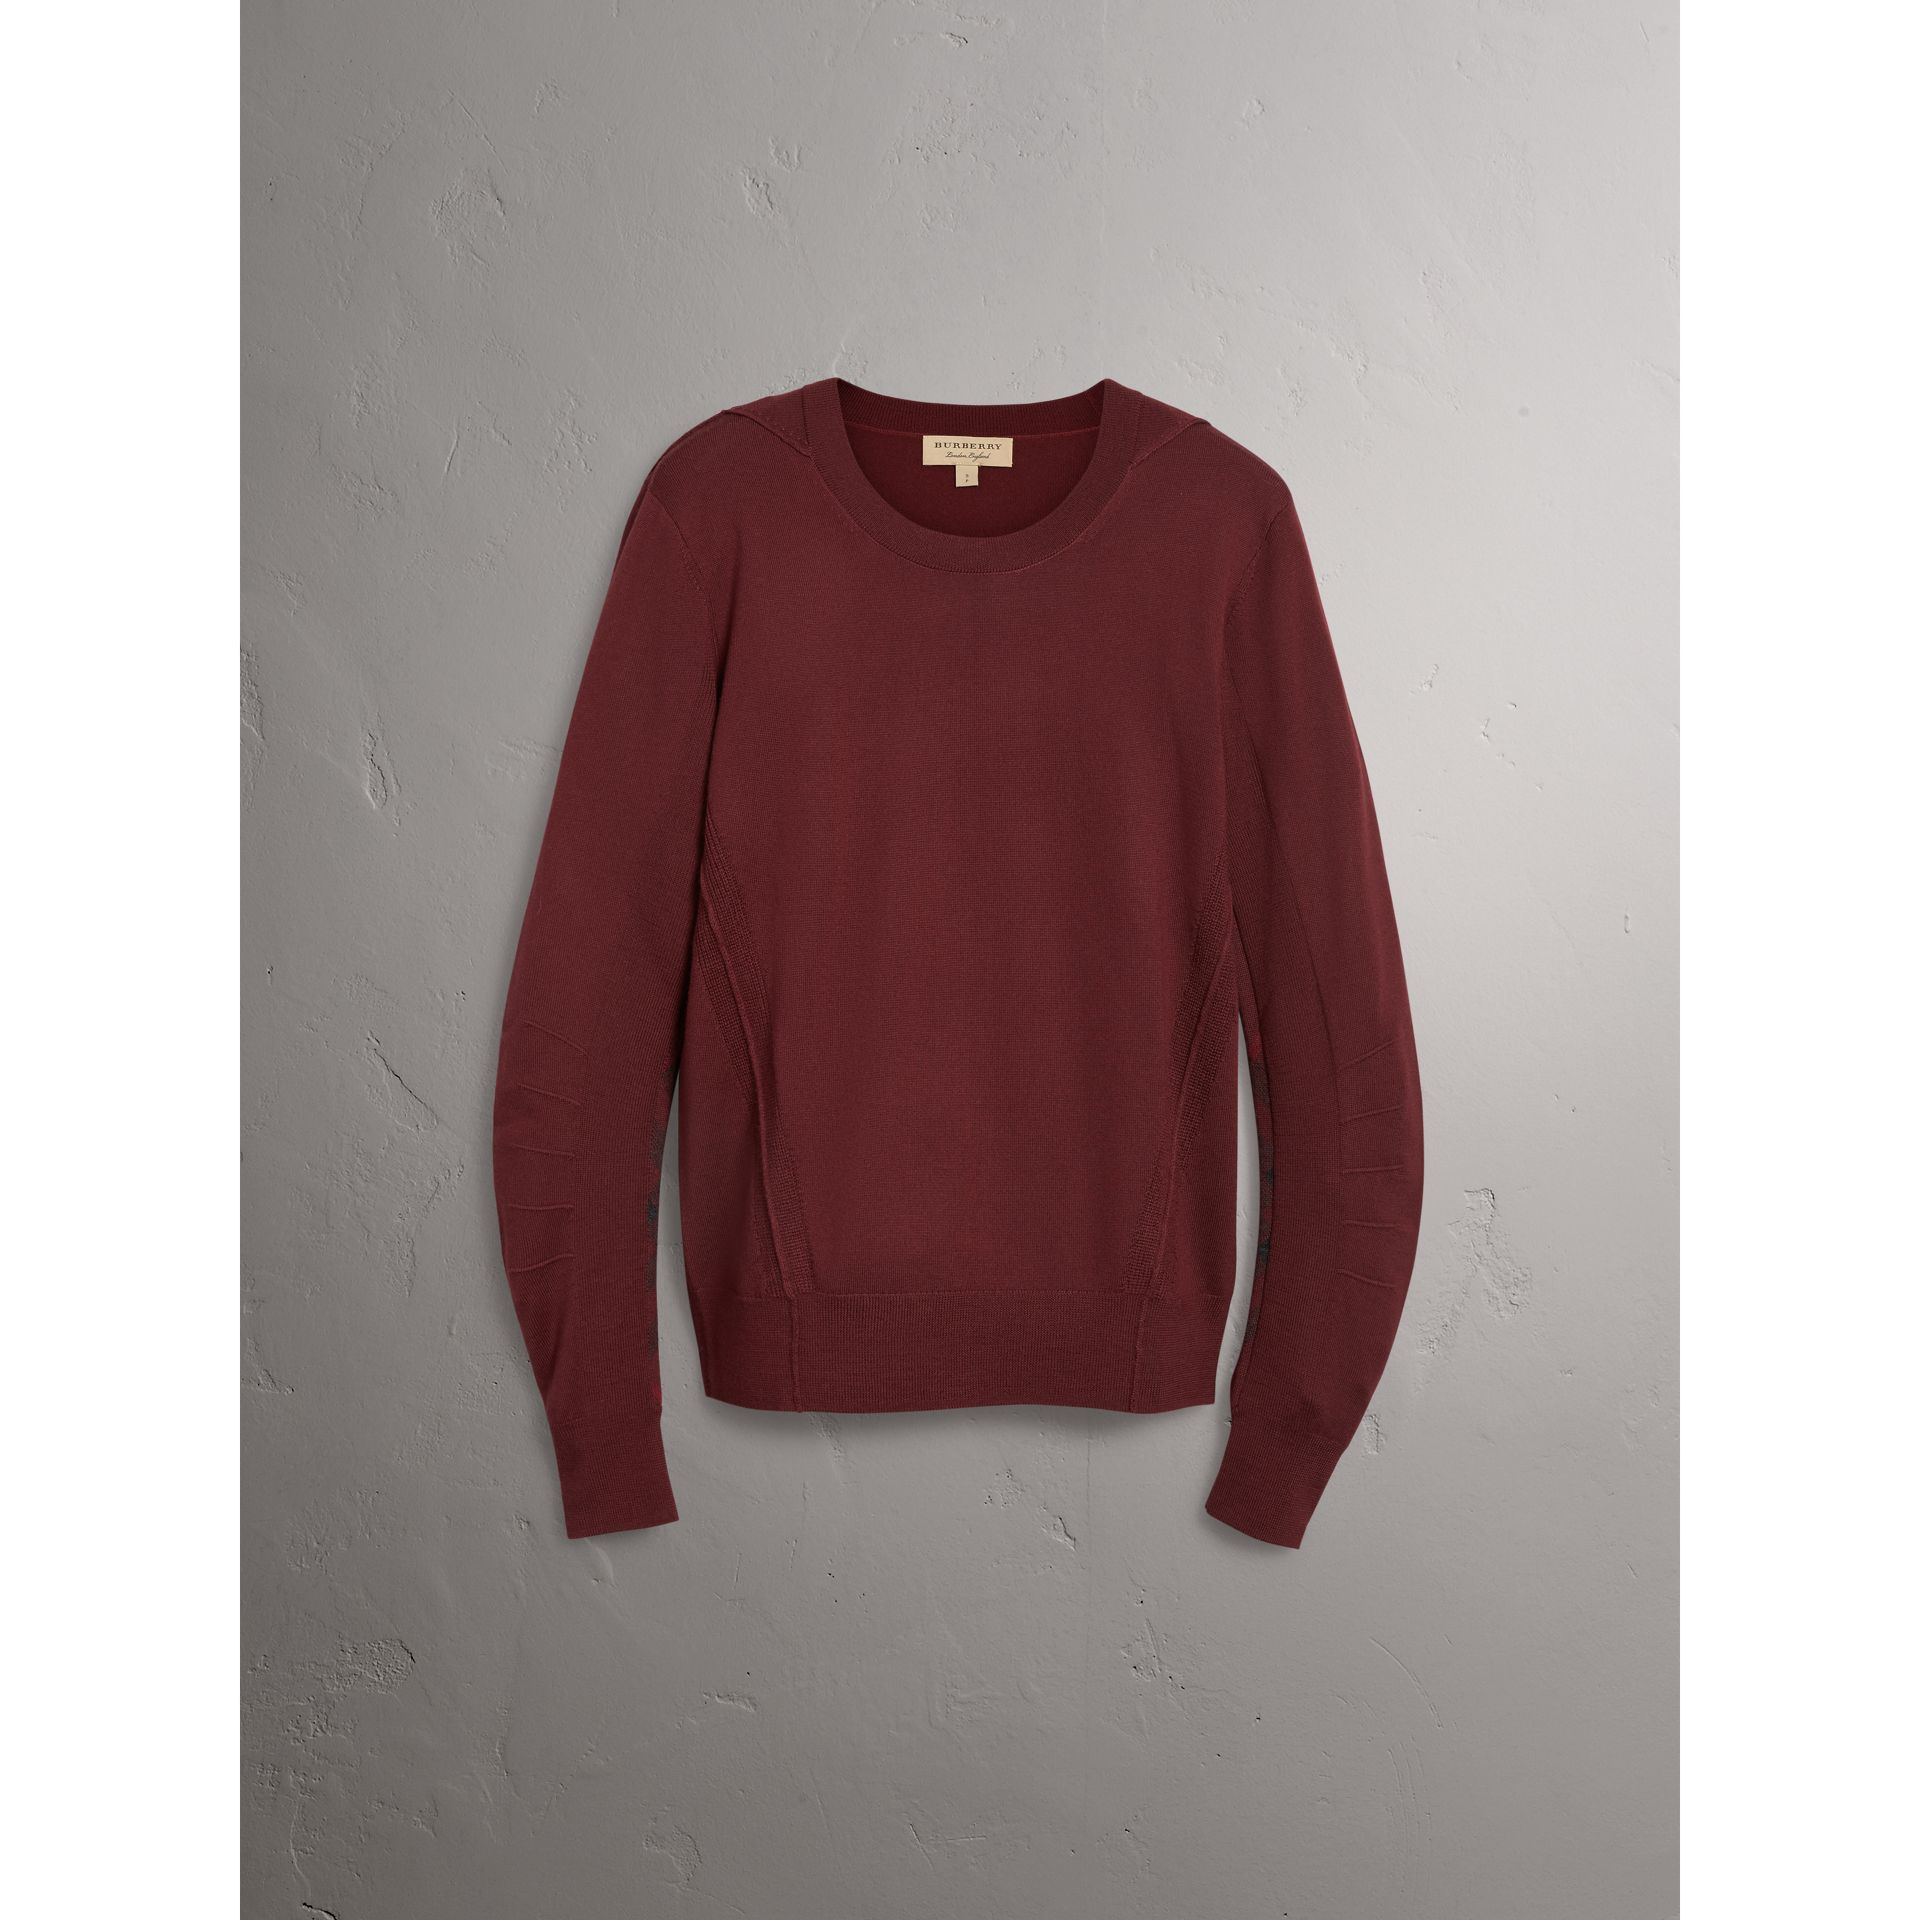 Check Detail Merino Wool Sweater in Burgundy - Men | Burberry Canada - gallery image 3